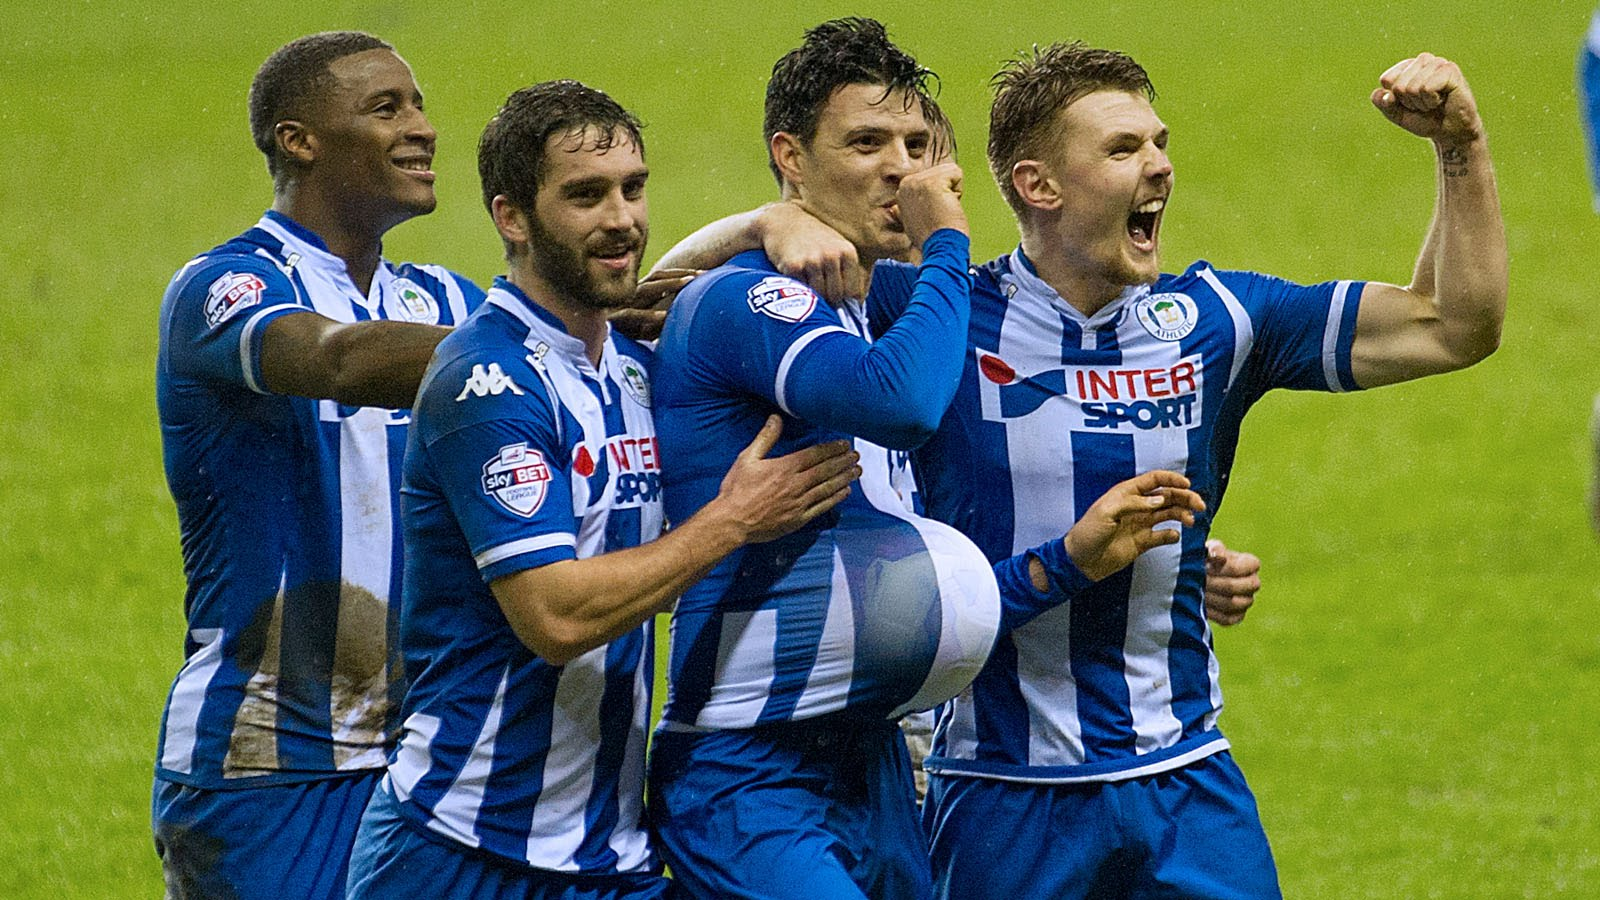 Image result for wigan athletic fc 2017